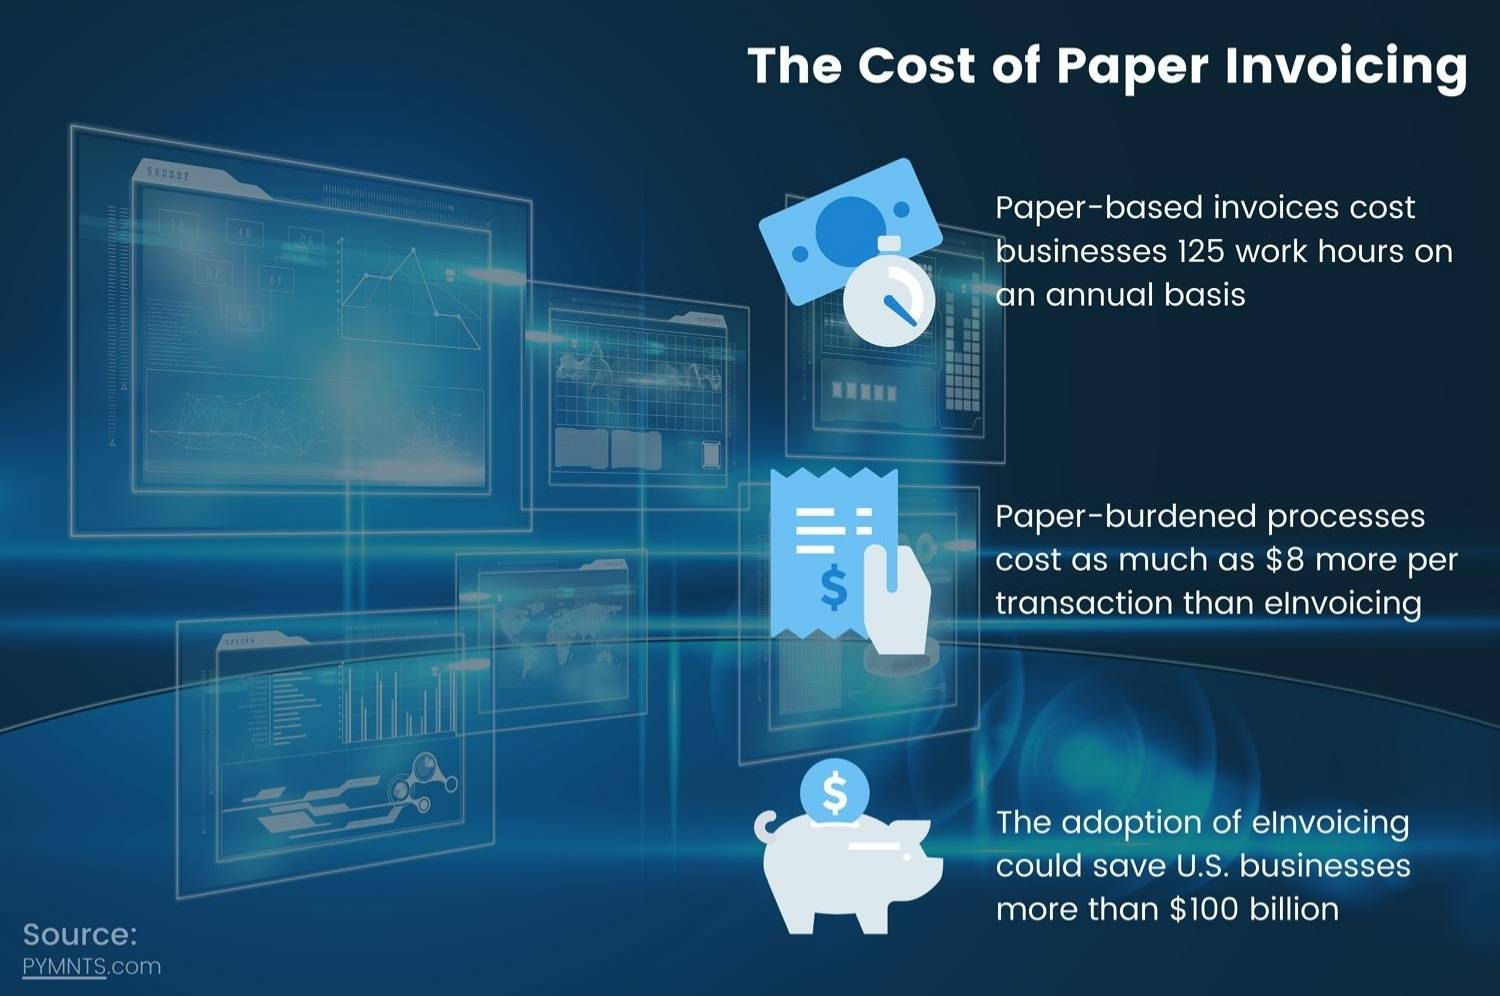 The_Cost_of_Antiquated_Paper_Invoicing_Infographic_with_Statistics